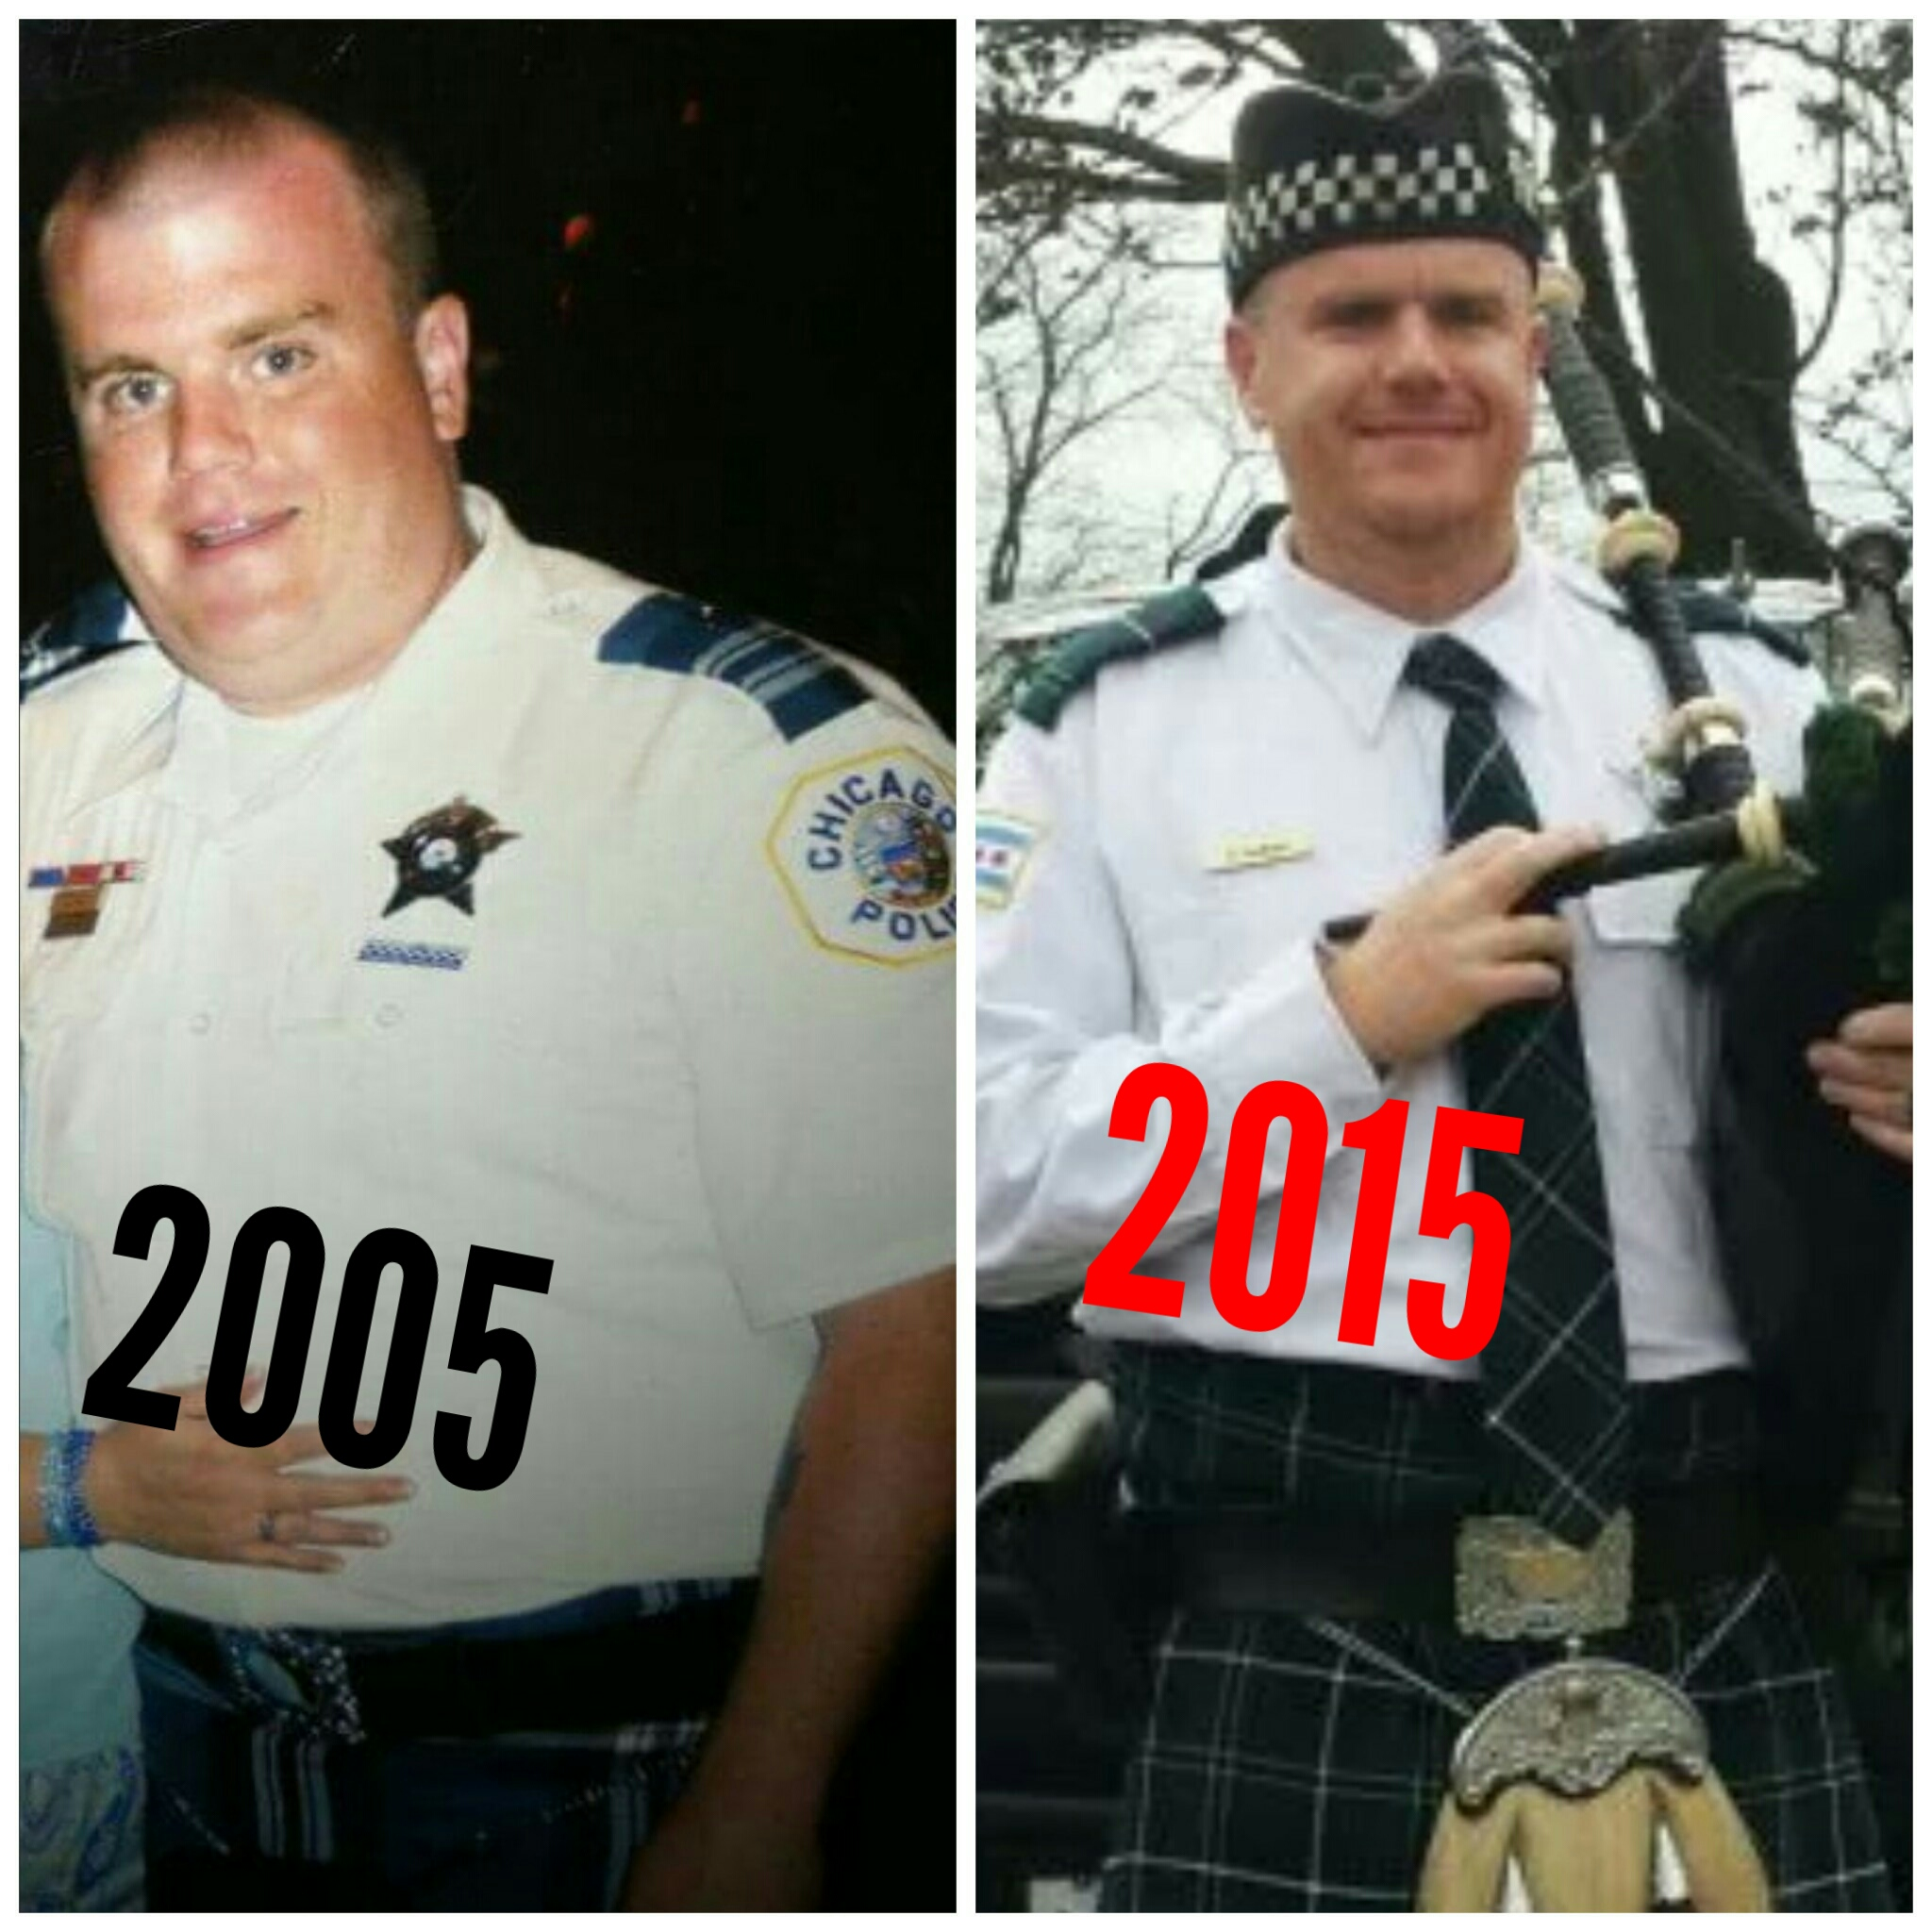 2 images of steve before and after --- him heavy, and 10 years later he's lighter